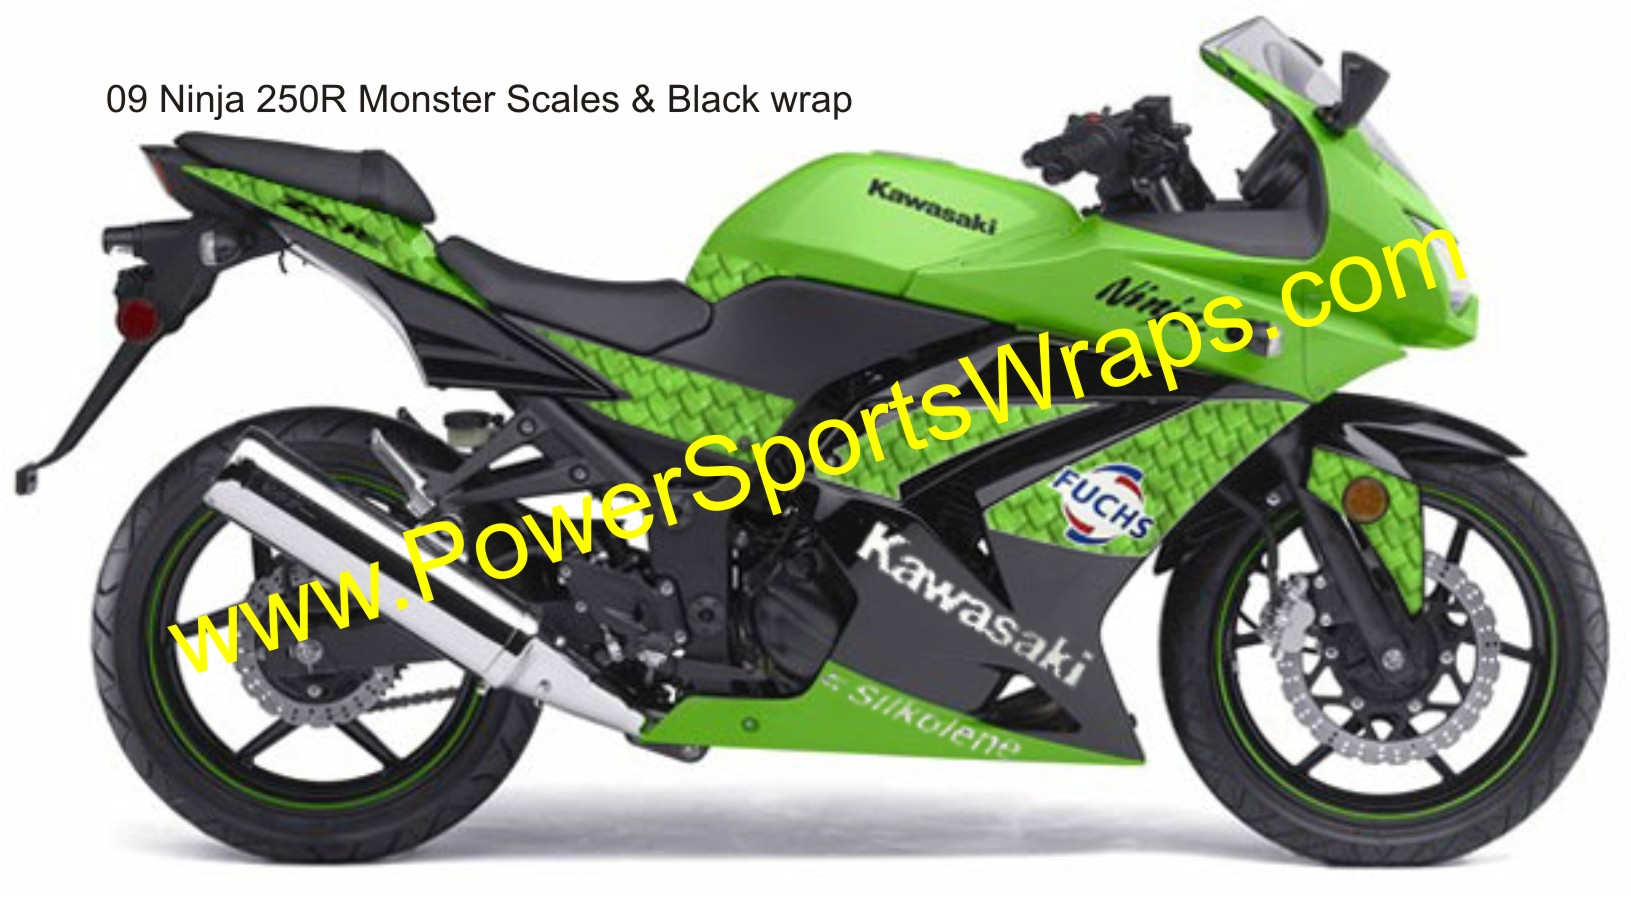 Monster Wrap Archives Powersportswrapscom - Vinyl bike wrapmotorcycle wrap archives powersportswrapscom